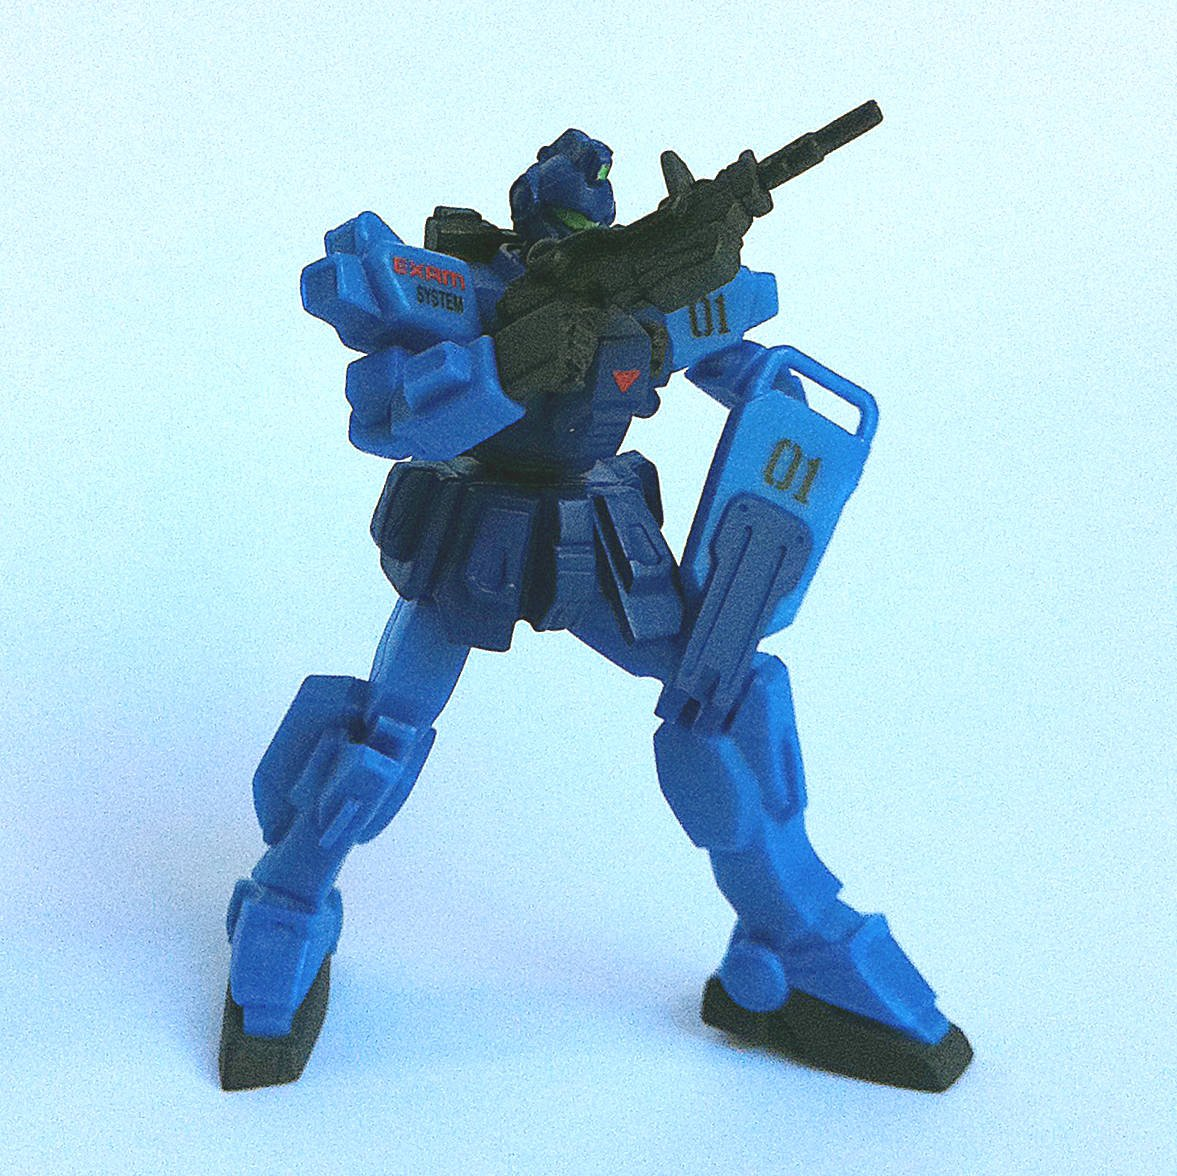 RX-79BD-1 Blue Destiny Unit 1 from HG Gundam MS Selection by Bandai